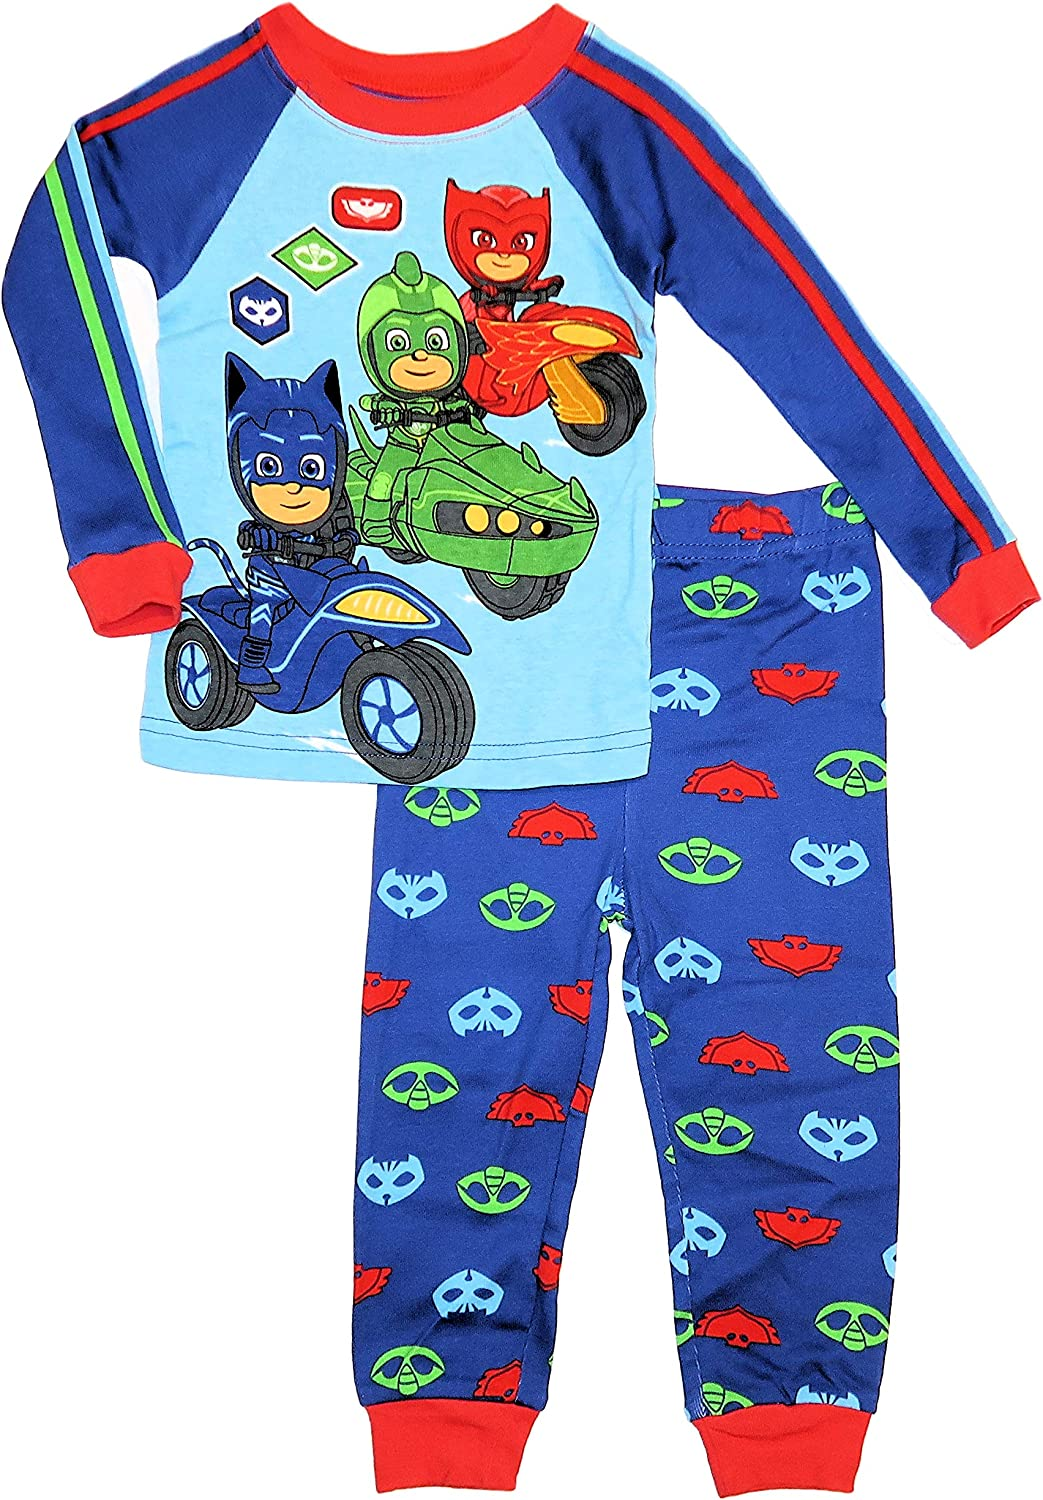 AME PJ Masks Baby Boys Size 18 Months 2-Cotton Pajama Sets Blue//Red//Green